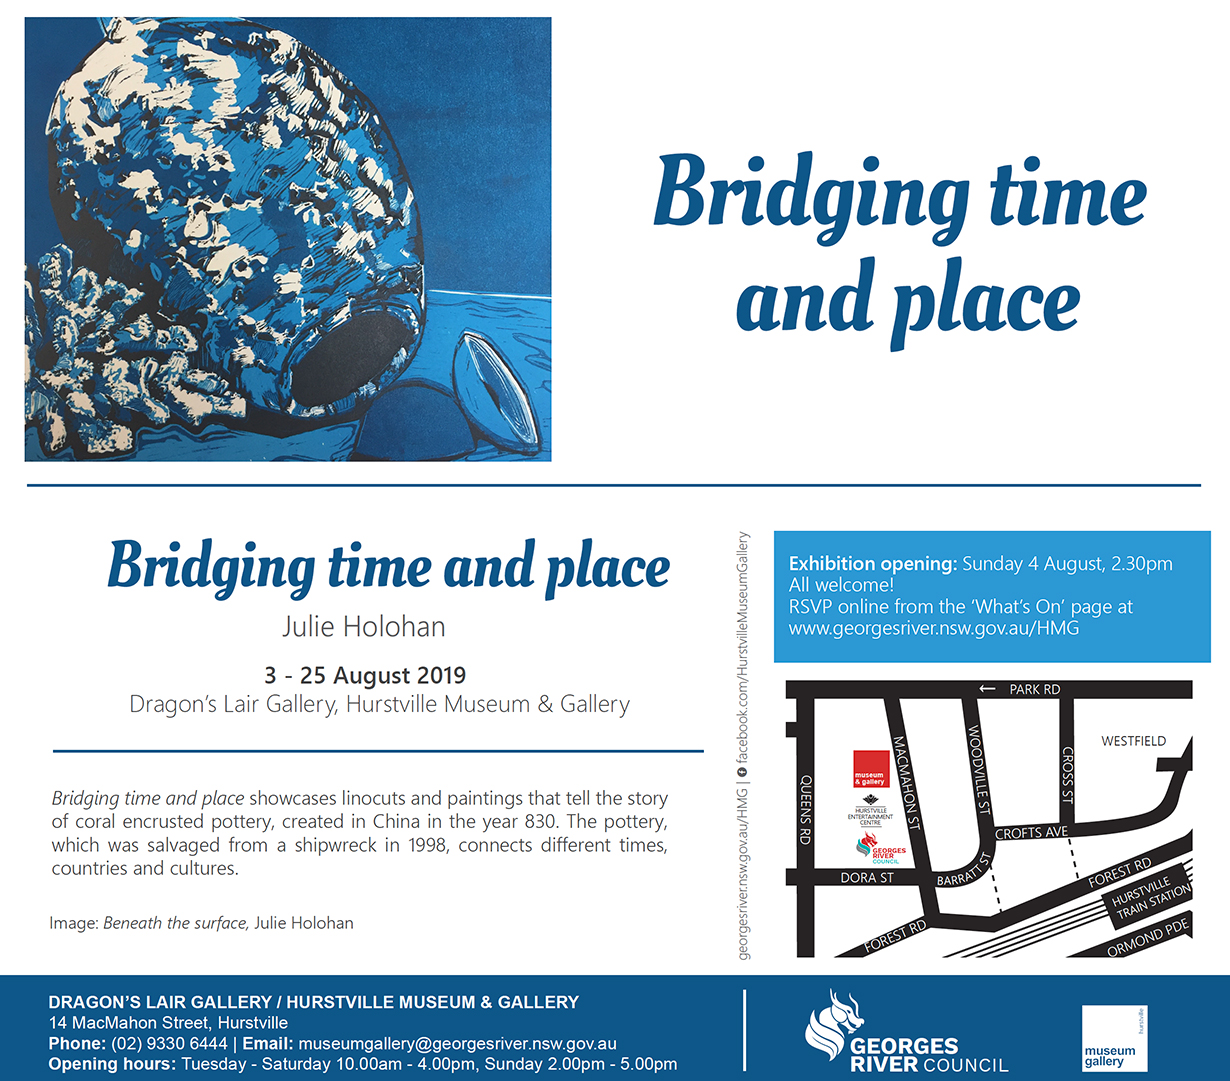 Bridging time and place exhibition by Julie Holohan